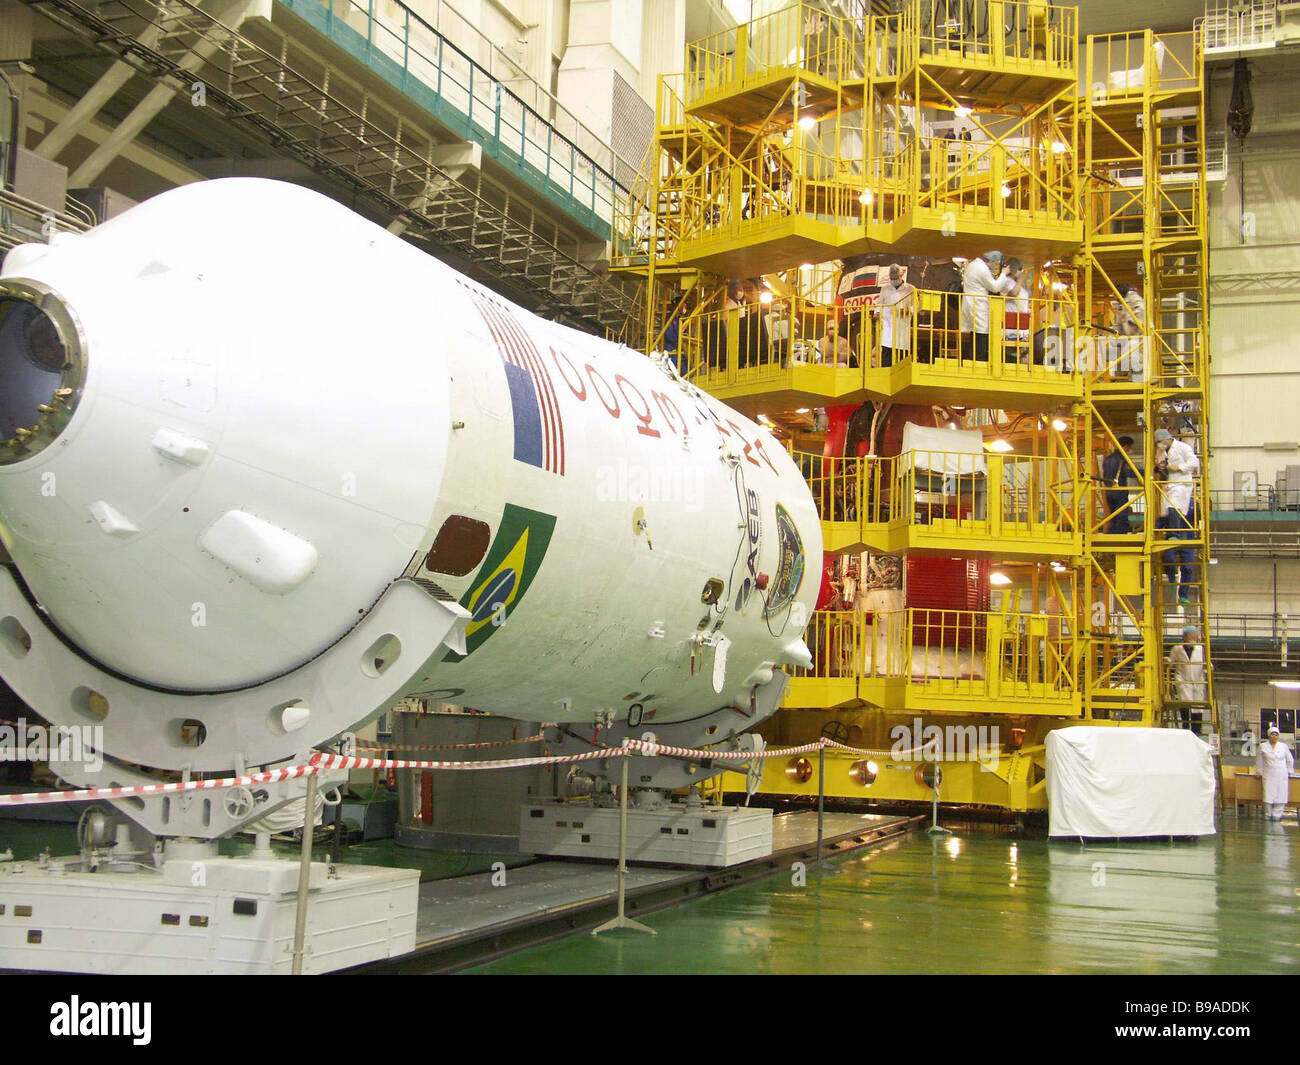 On the Baikonur cosmodrome the flight and stand by crews of the Soyuz TMA 8 spaceship had a training and tried on Stock Photo